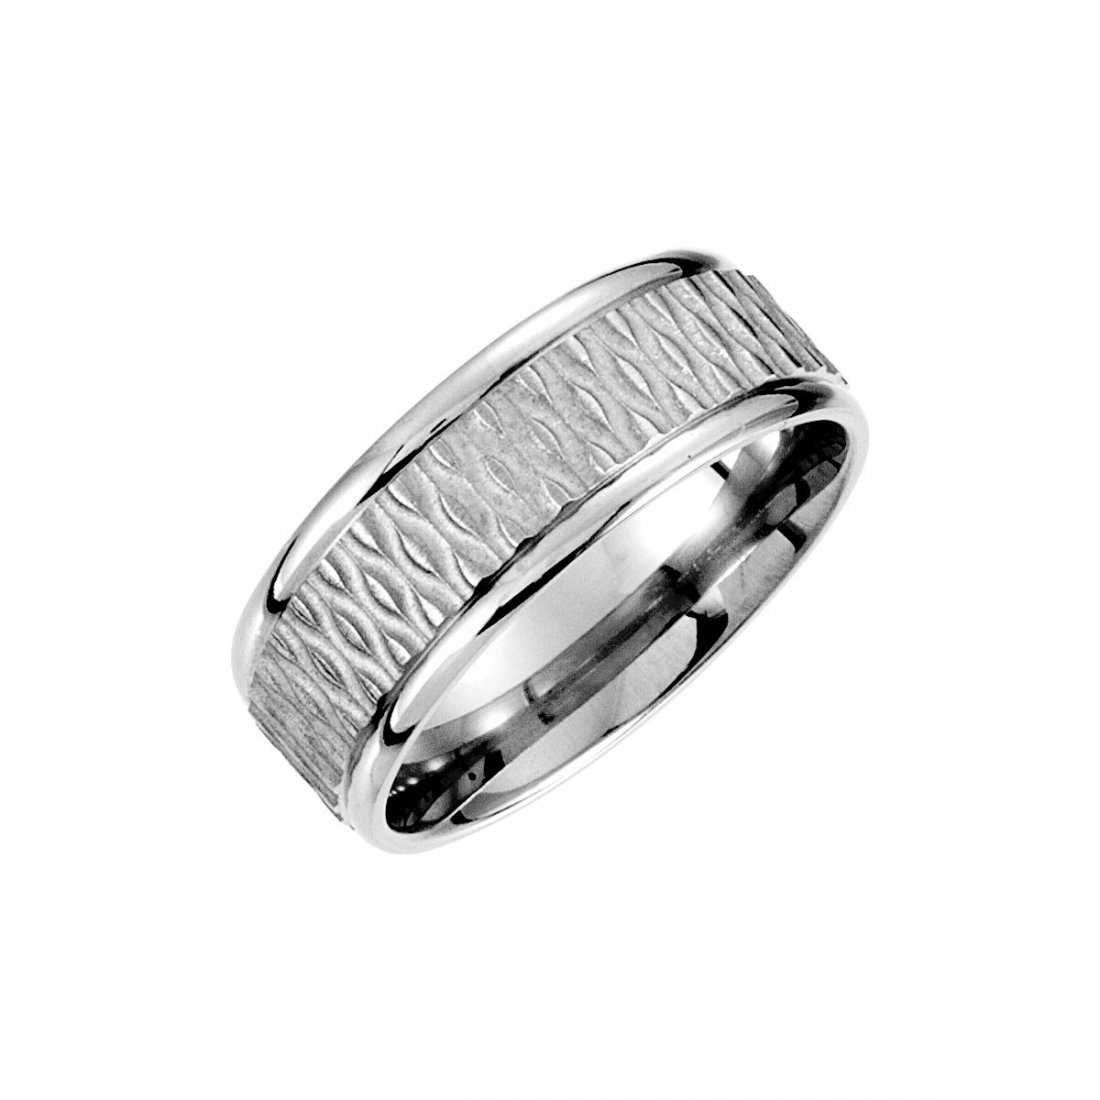 Ring - 14k White Gold 8mm Fancy Patterned Carved Band